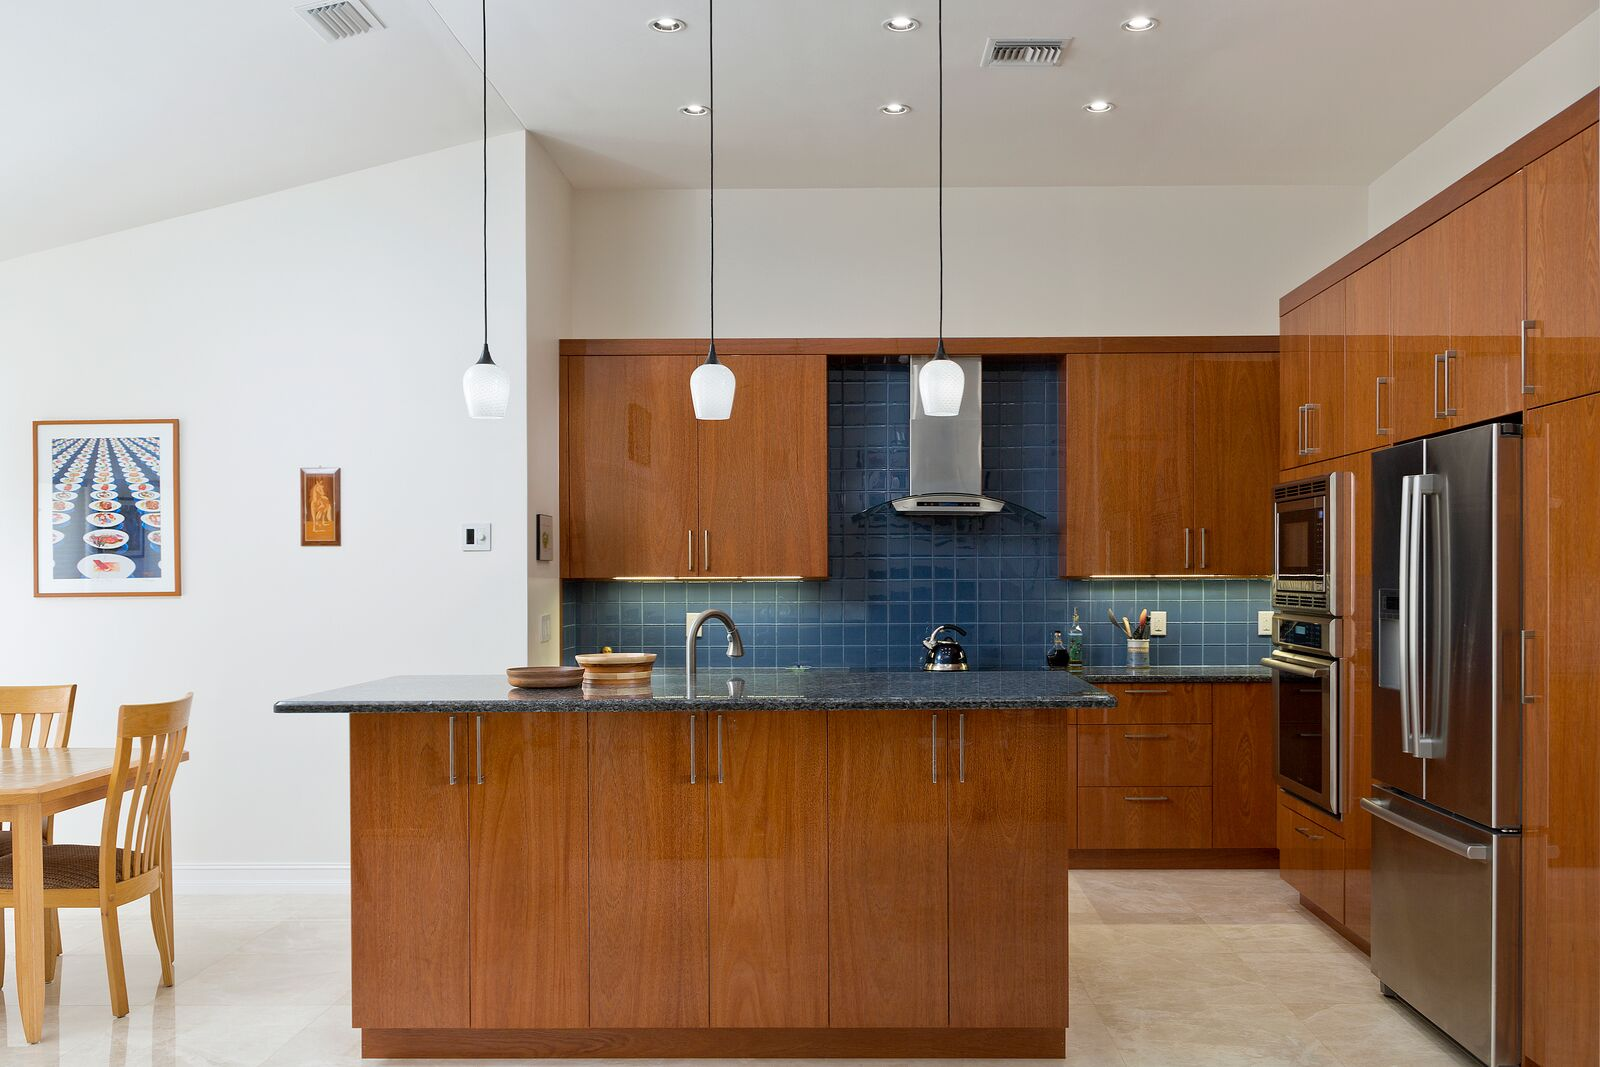 Kitchen renovation near Pompano Beach